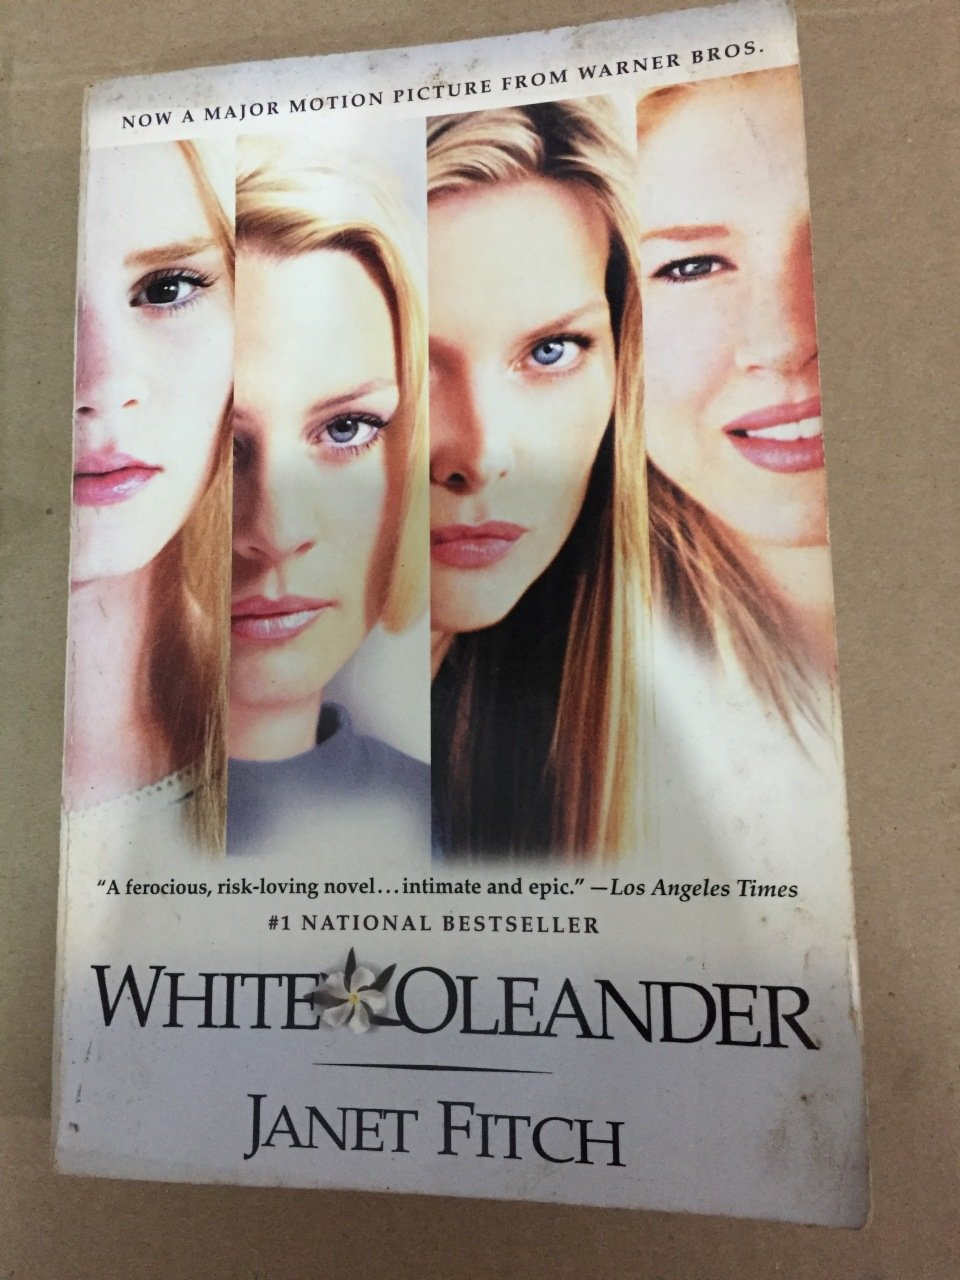 an analysis of the white oleander a novel by janet fitch White oleander is a siren song of a novel, seducing the reader with its story, its language, and, perhaps most of all, with its utterly believable (and remarkably diverse) characters the narrator is particularly memorable-there were times she made me want to cheer and weep simultaneously.